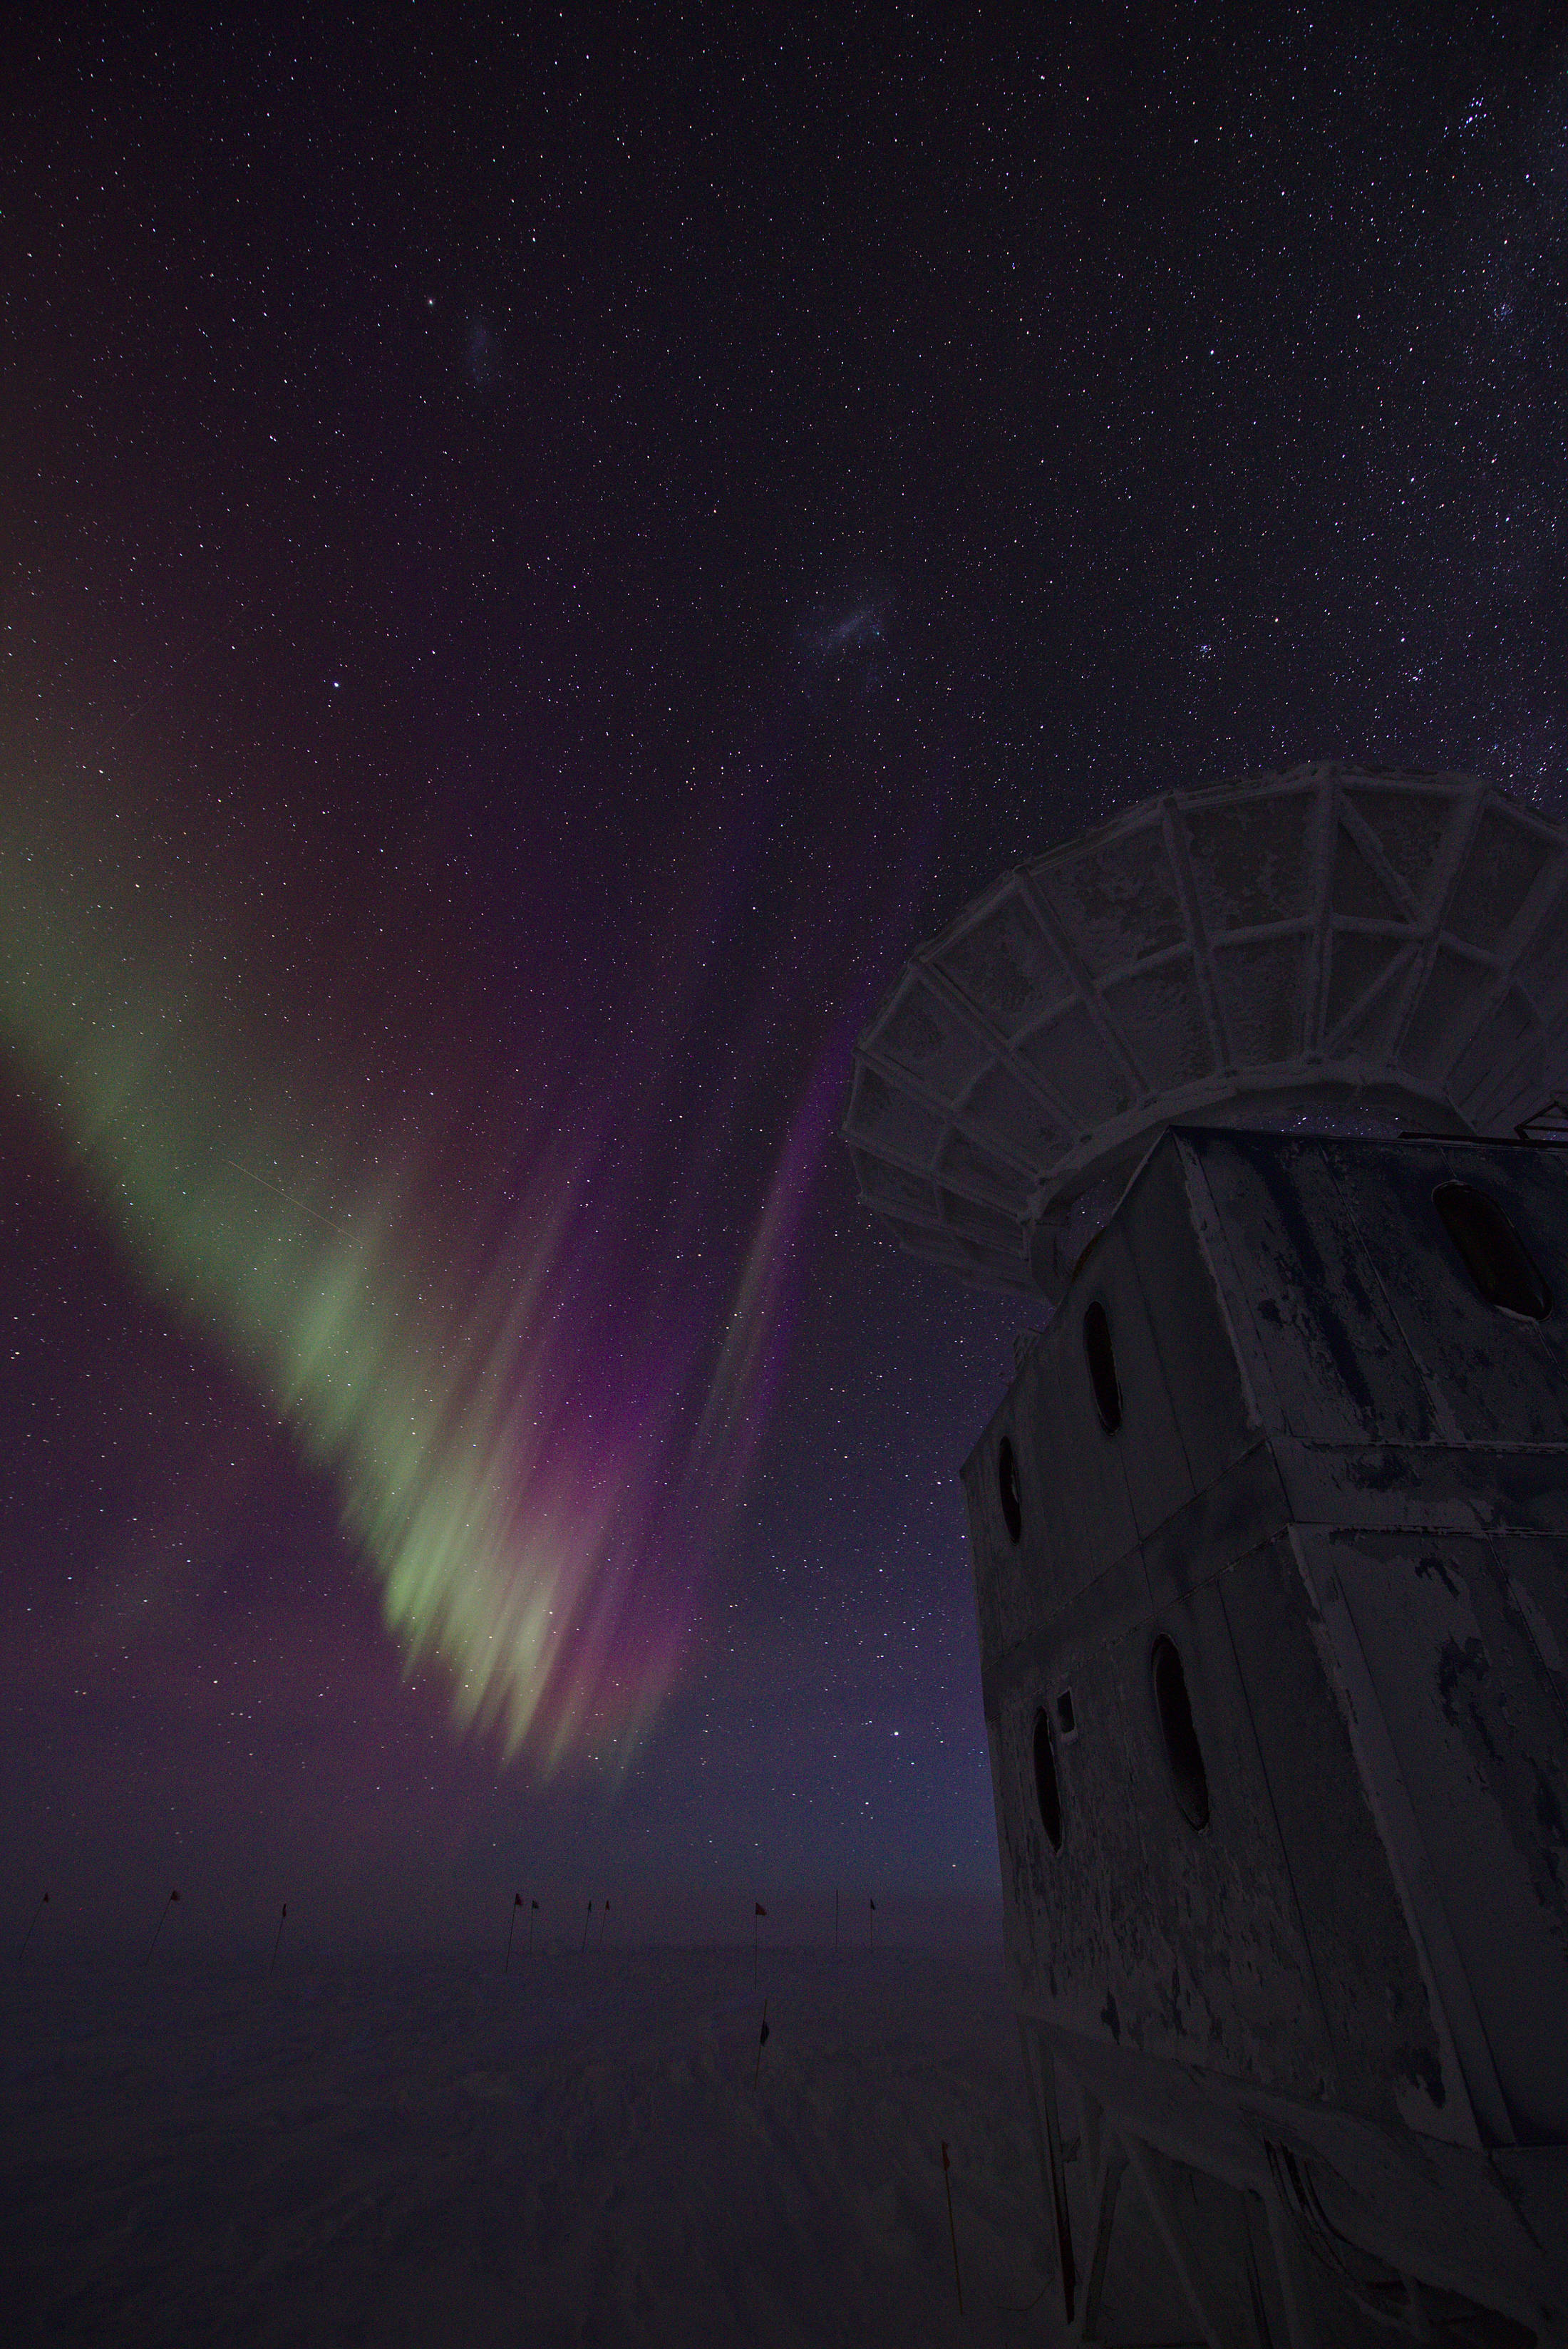 The BICEP telescope ground shield below the starry skies